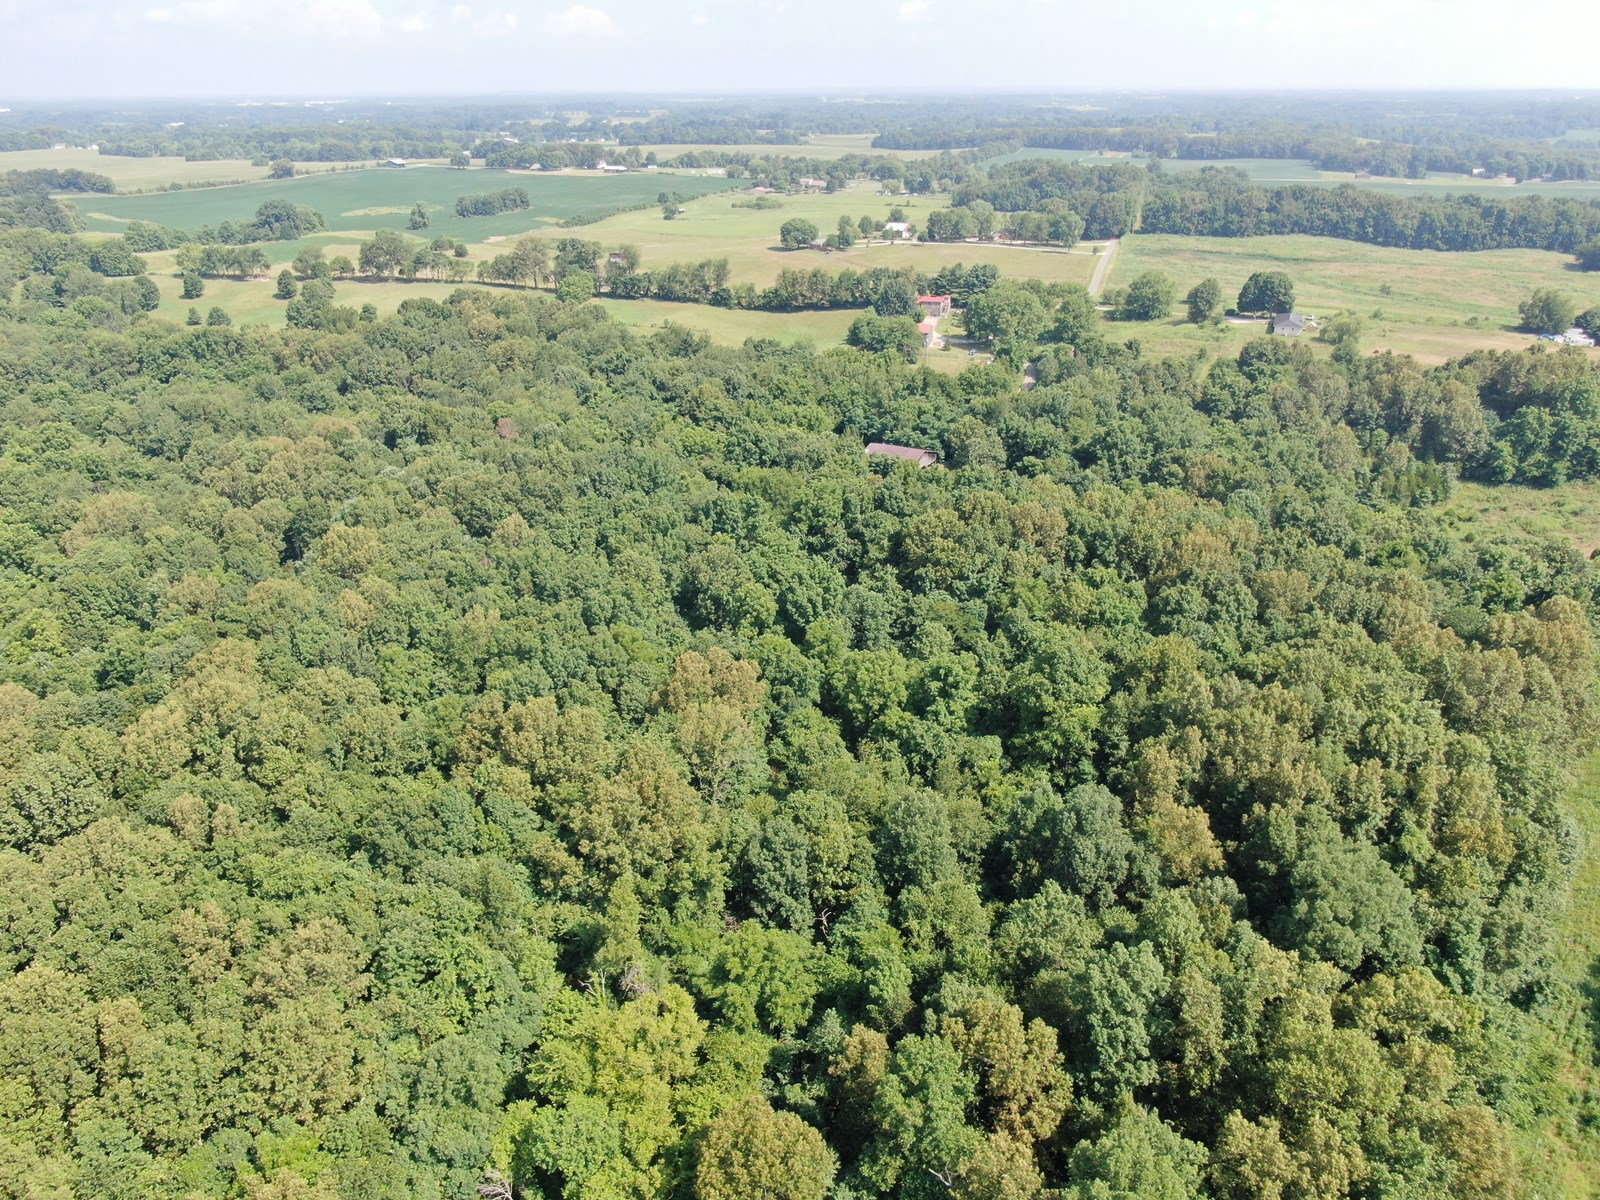 108 Wooded & Hunting Acres for sale in Simpson County Ky.